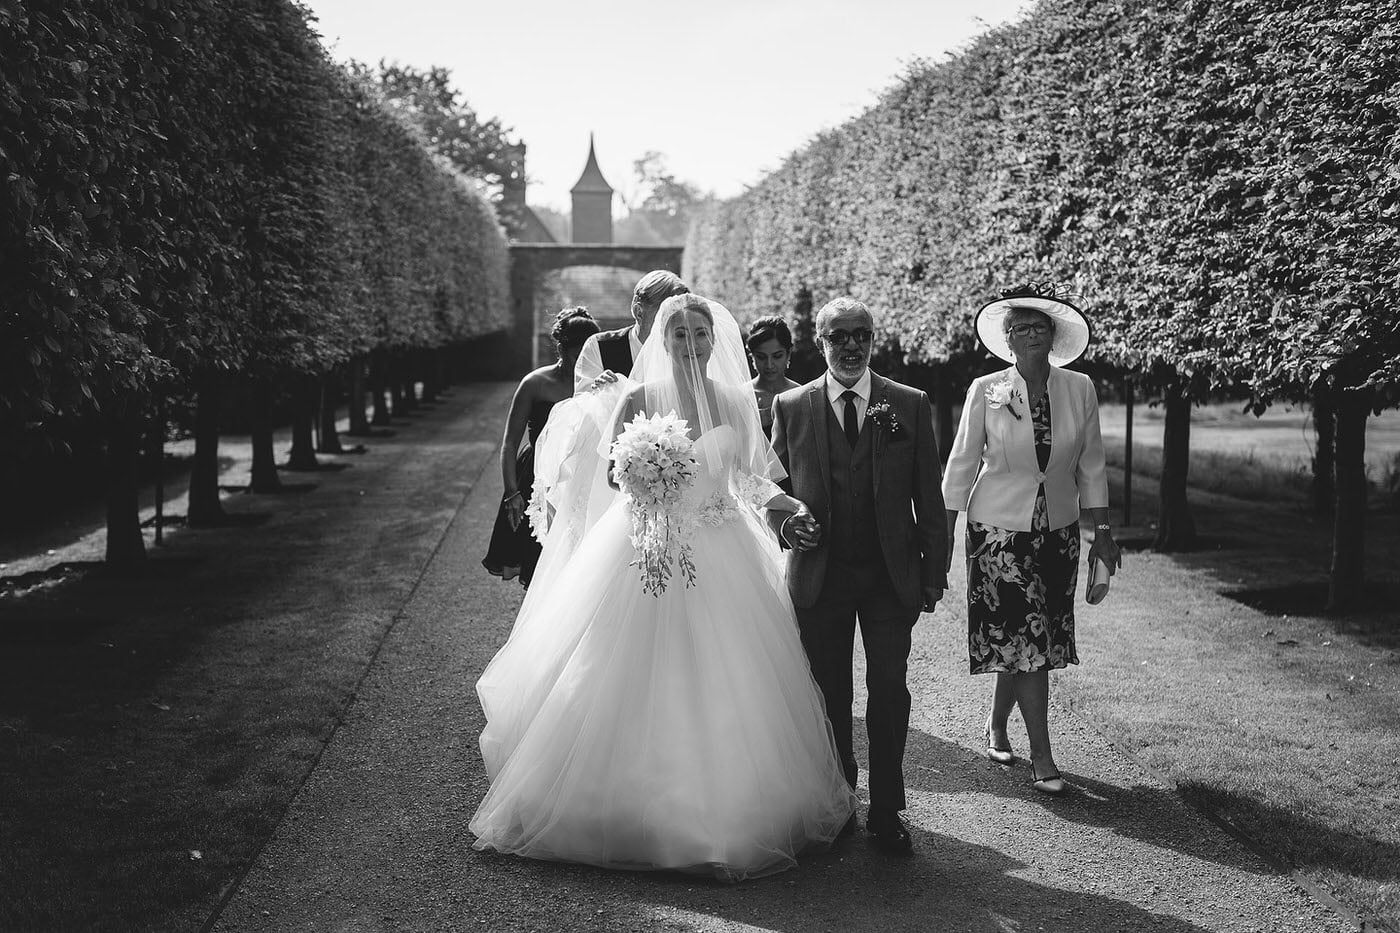 Bridal party making their way to the ceremony at combermere abbey wedding venue